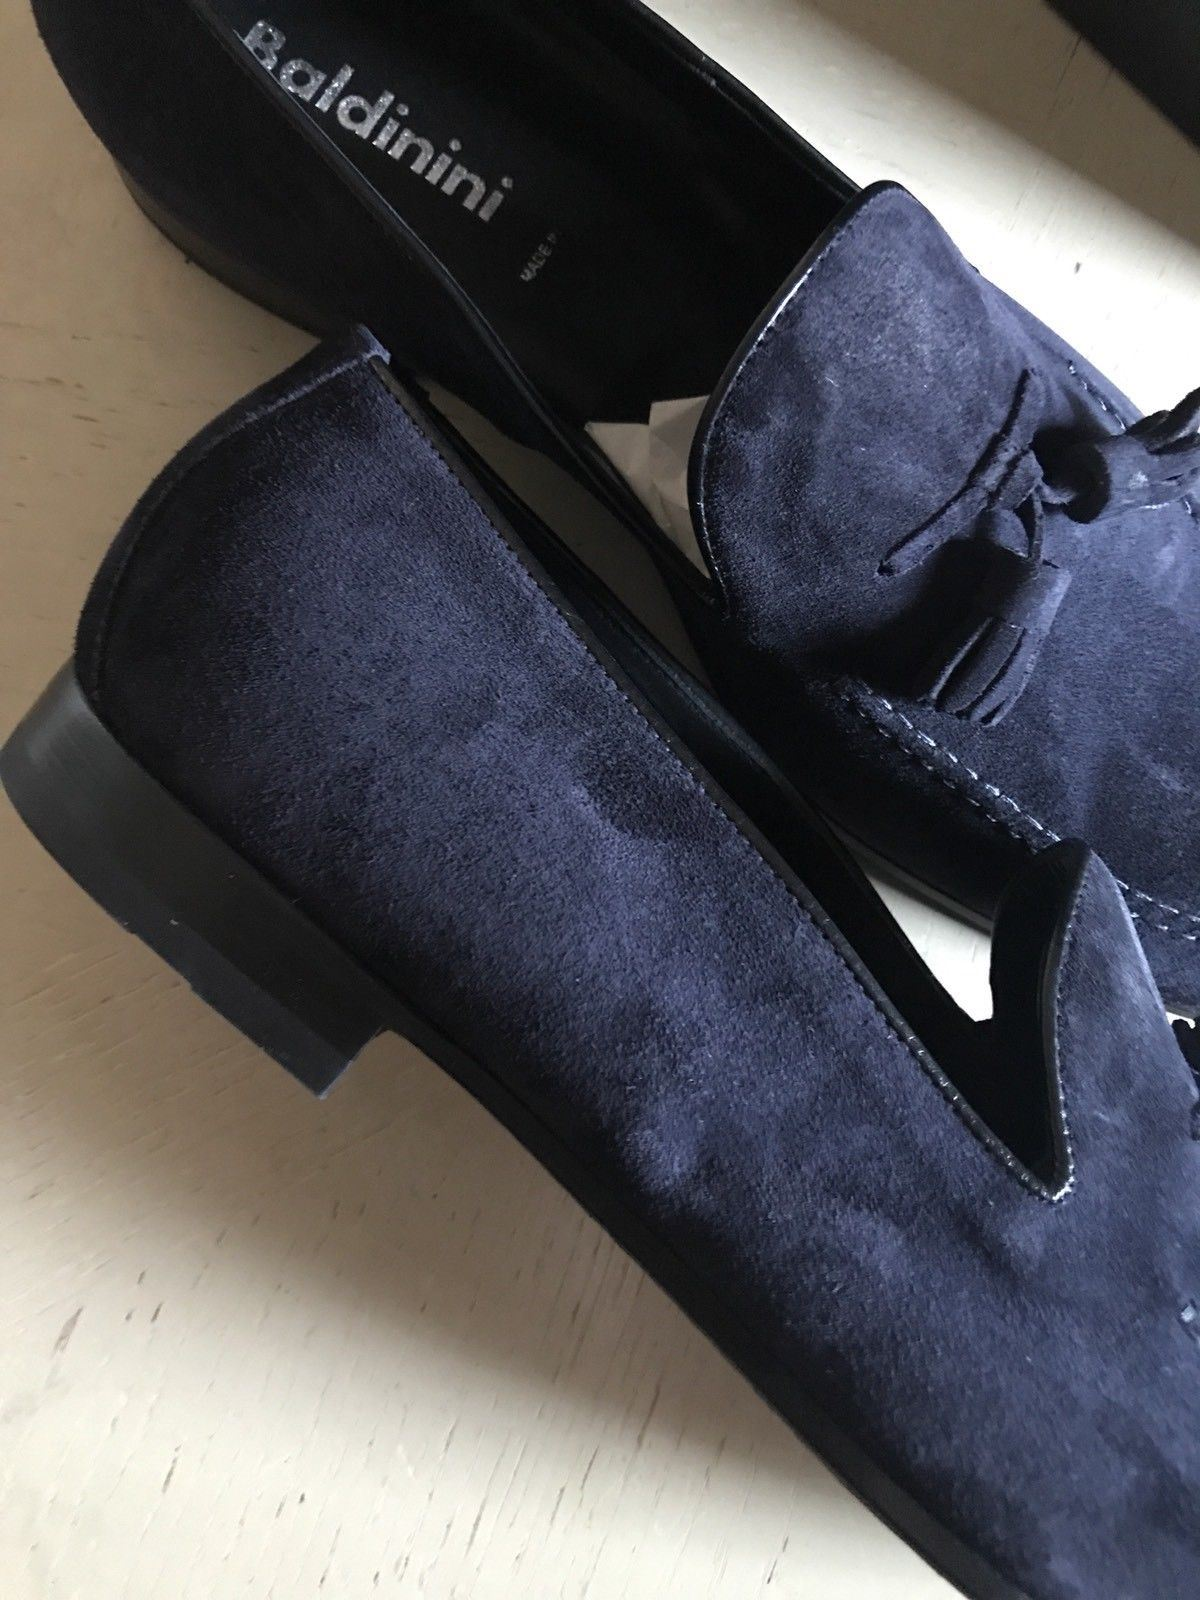 New $670 Baldinini Men's Suede Loafers Shoes Dark Blue 9 US ( 42 Eu ) Italy - BAYSUPERSTORE